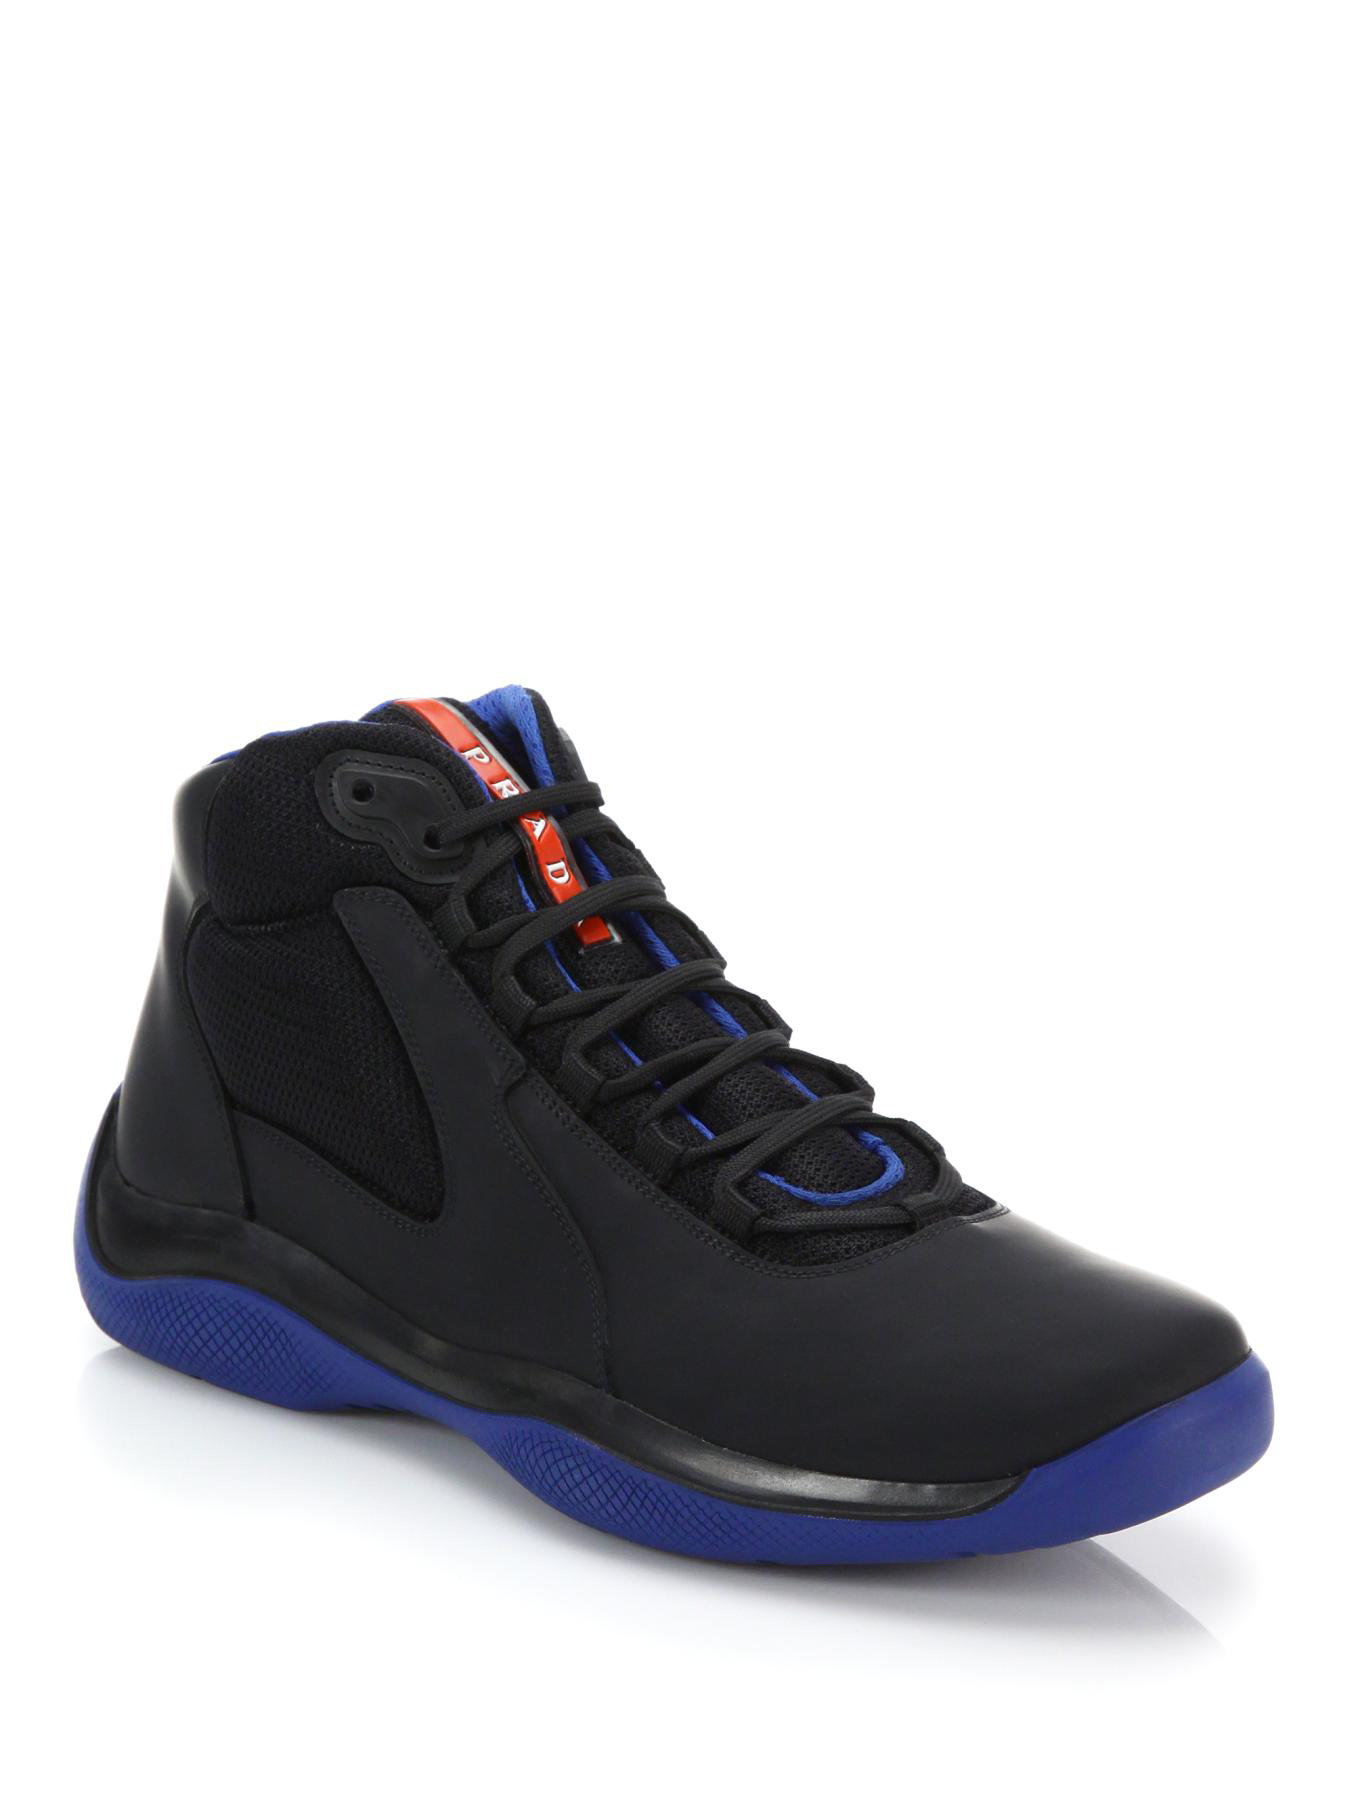 7c7a229387baf ... france lyst prada leather high top sneakers in black for men deee6 359e7